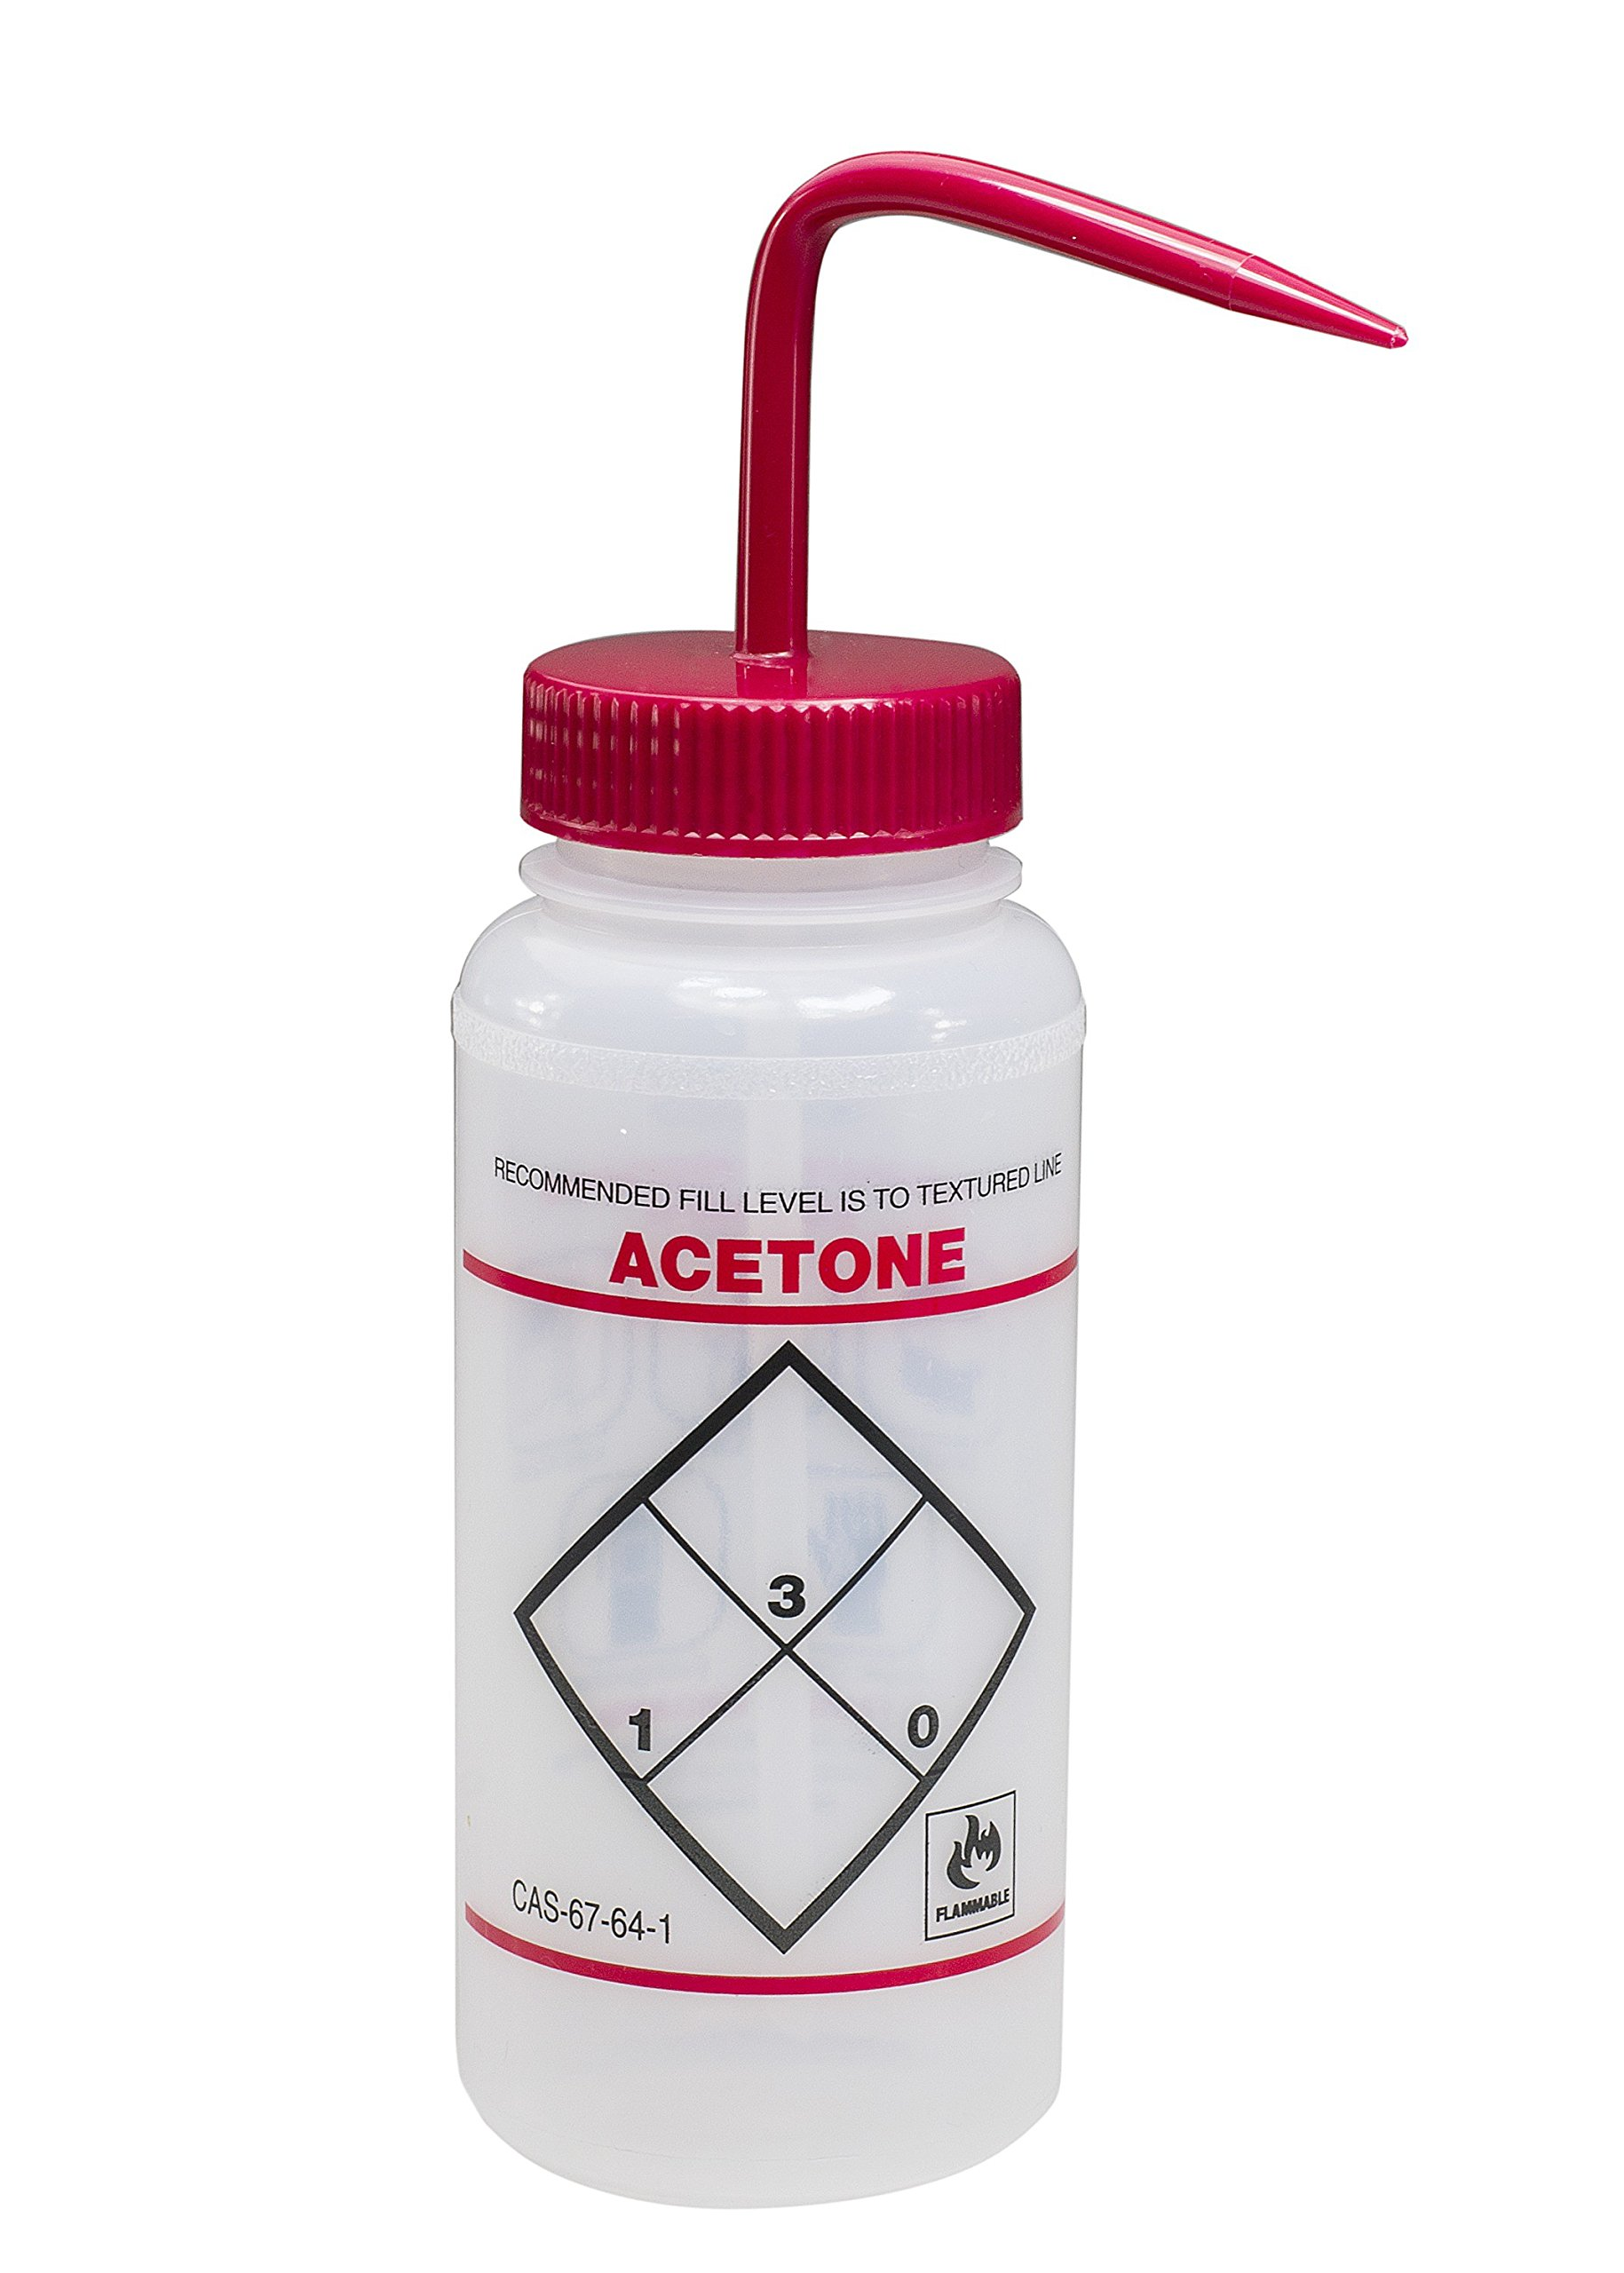 Bel-Art Scienceware F11646-0622 Acetone 2-Color Wash Bottle, 500 mL, Safety Labeled, Wide Mouth, Red Cap (Pack of 6) by SP Scienceware